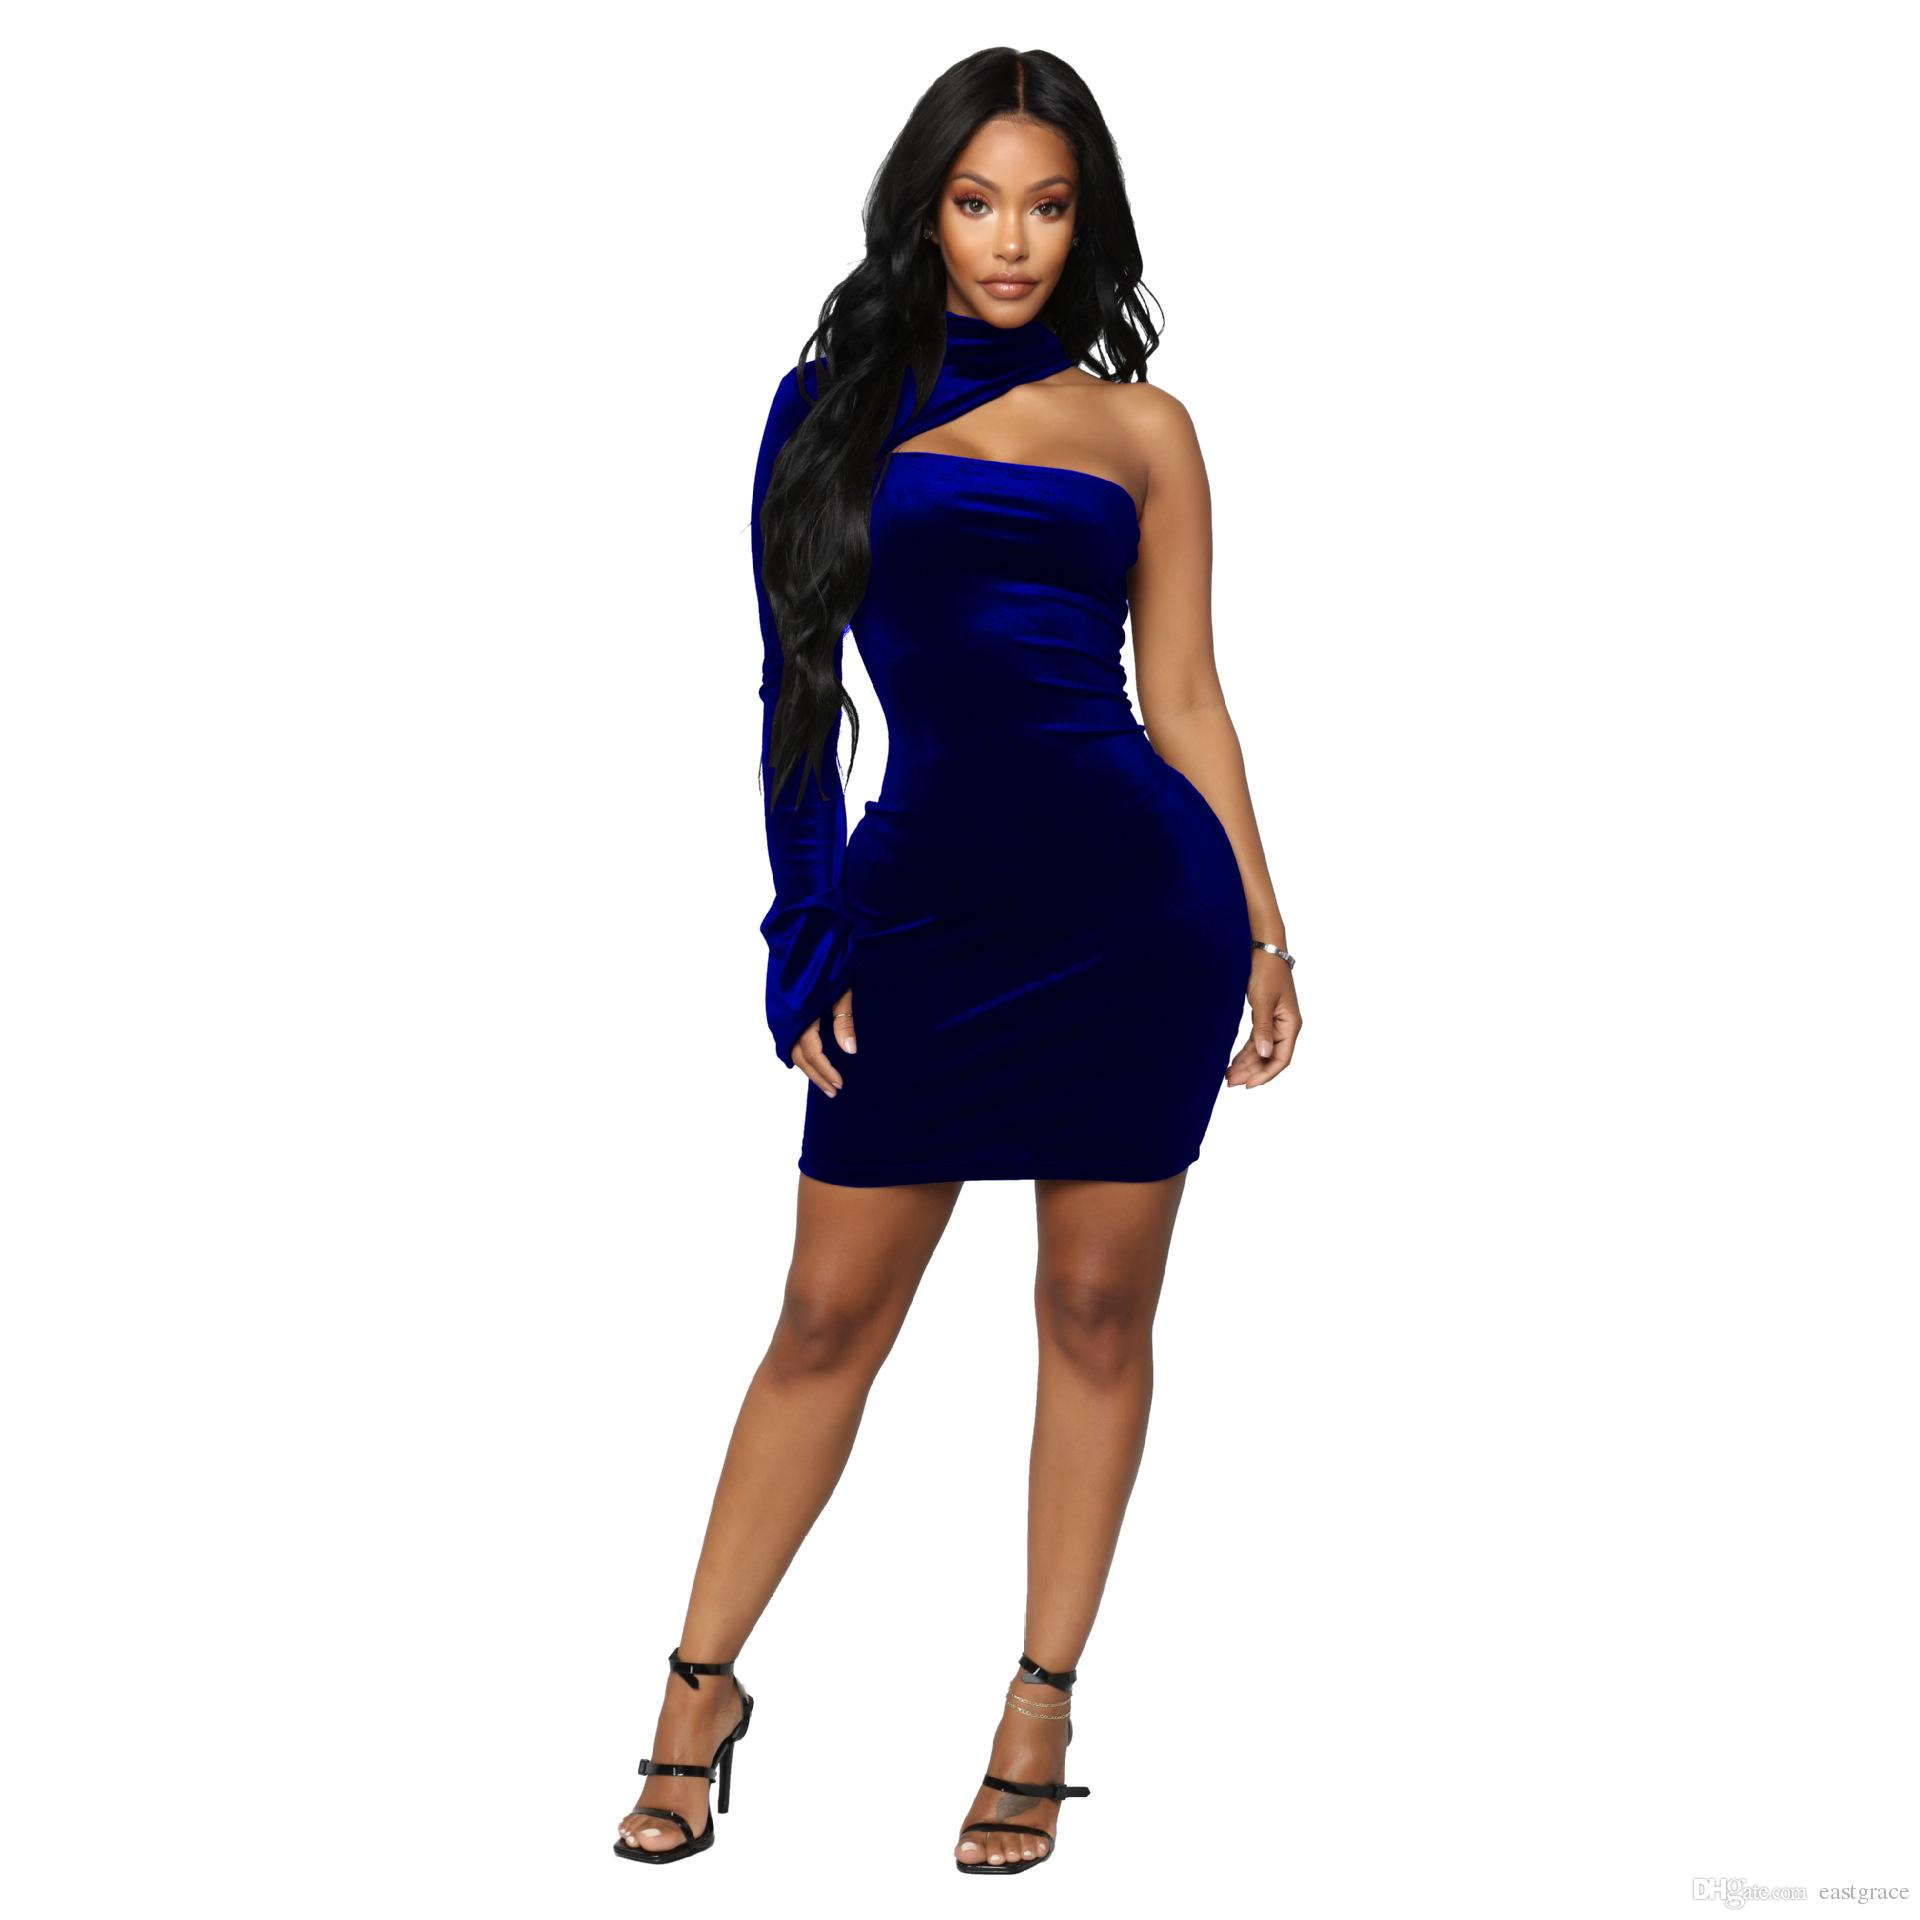 a960bf5b559 Bodycon Sheath Dresses One Shoulder Sleeve Party Sexy Dresses Women  Clothing Sexy Mini Tight Pencil Dresses With Teenage Dresses For Sale Long  Sleeve Casual ...